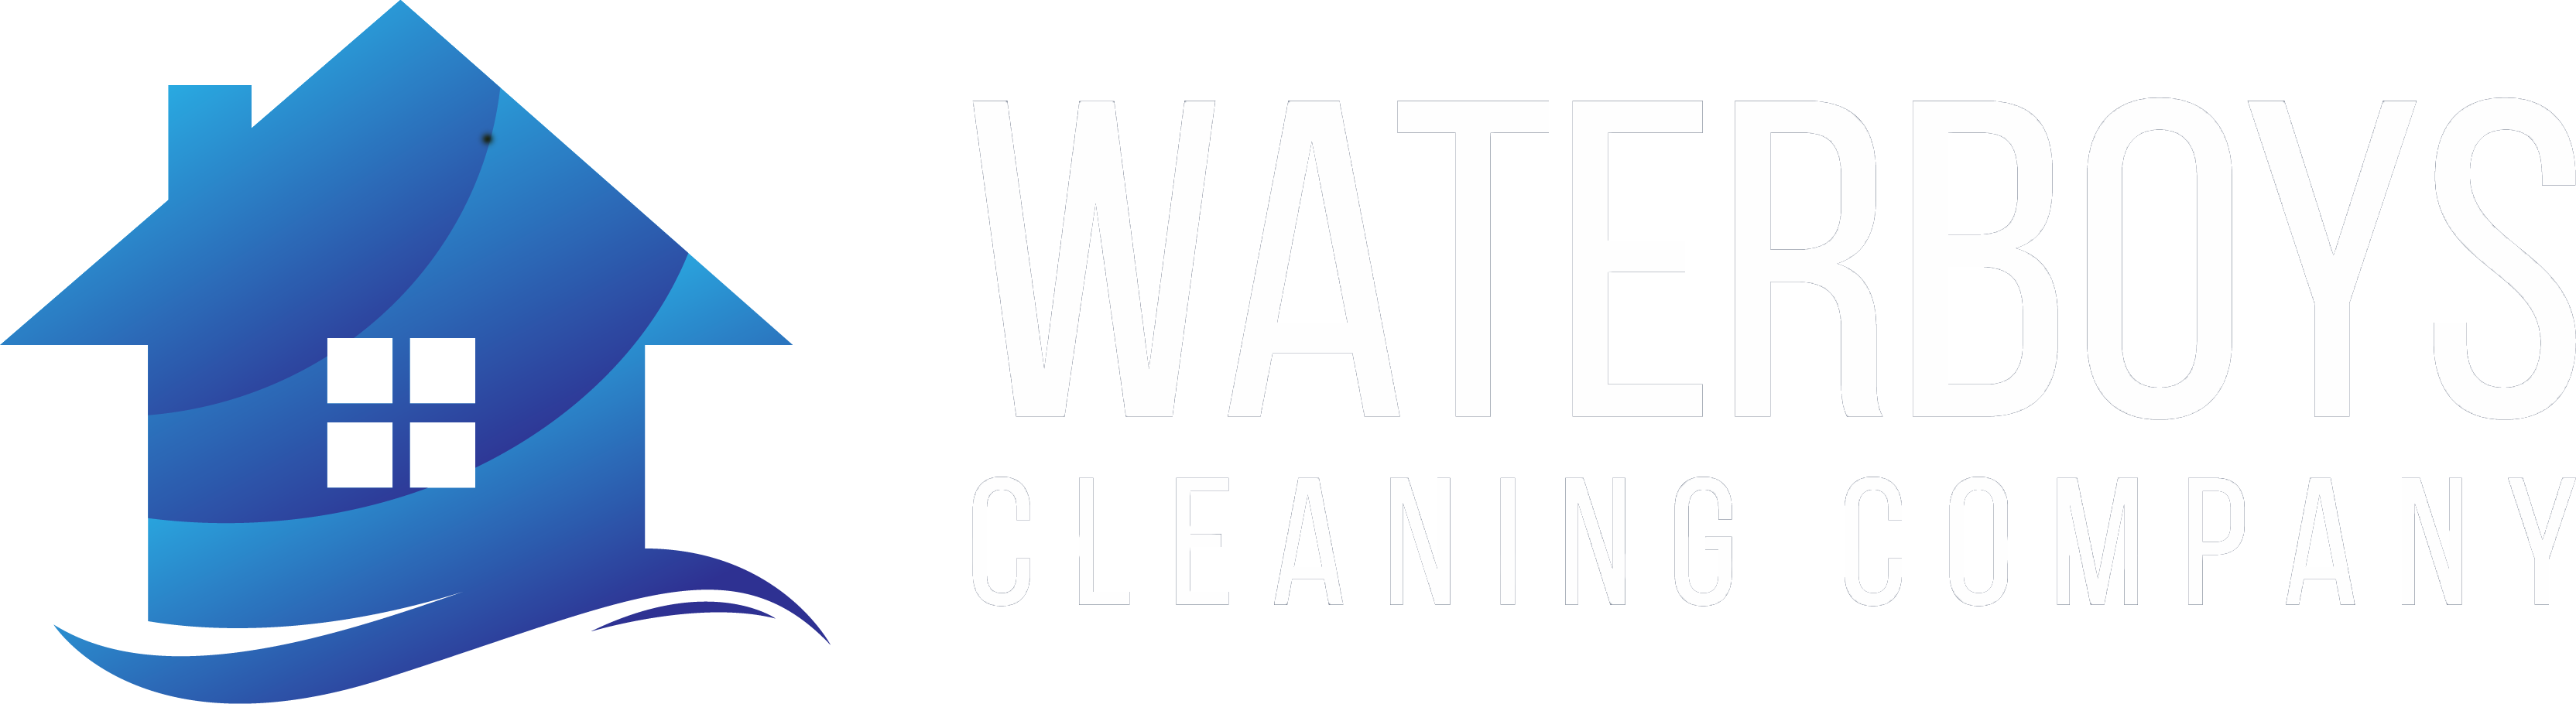 Waterboys Cleaning Company - Professional Cleaning Services